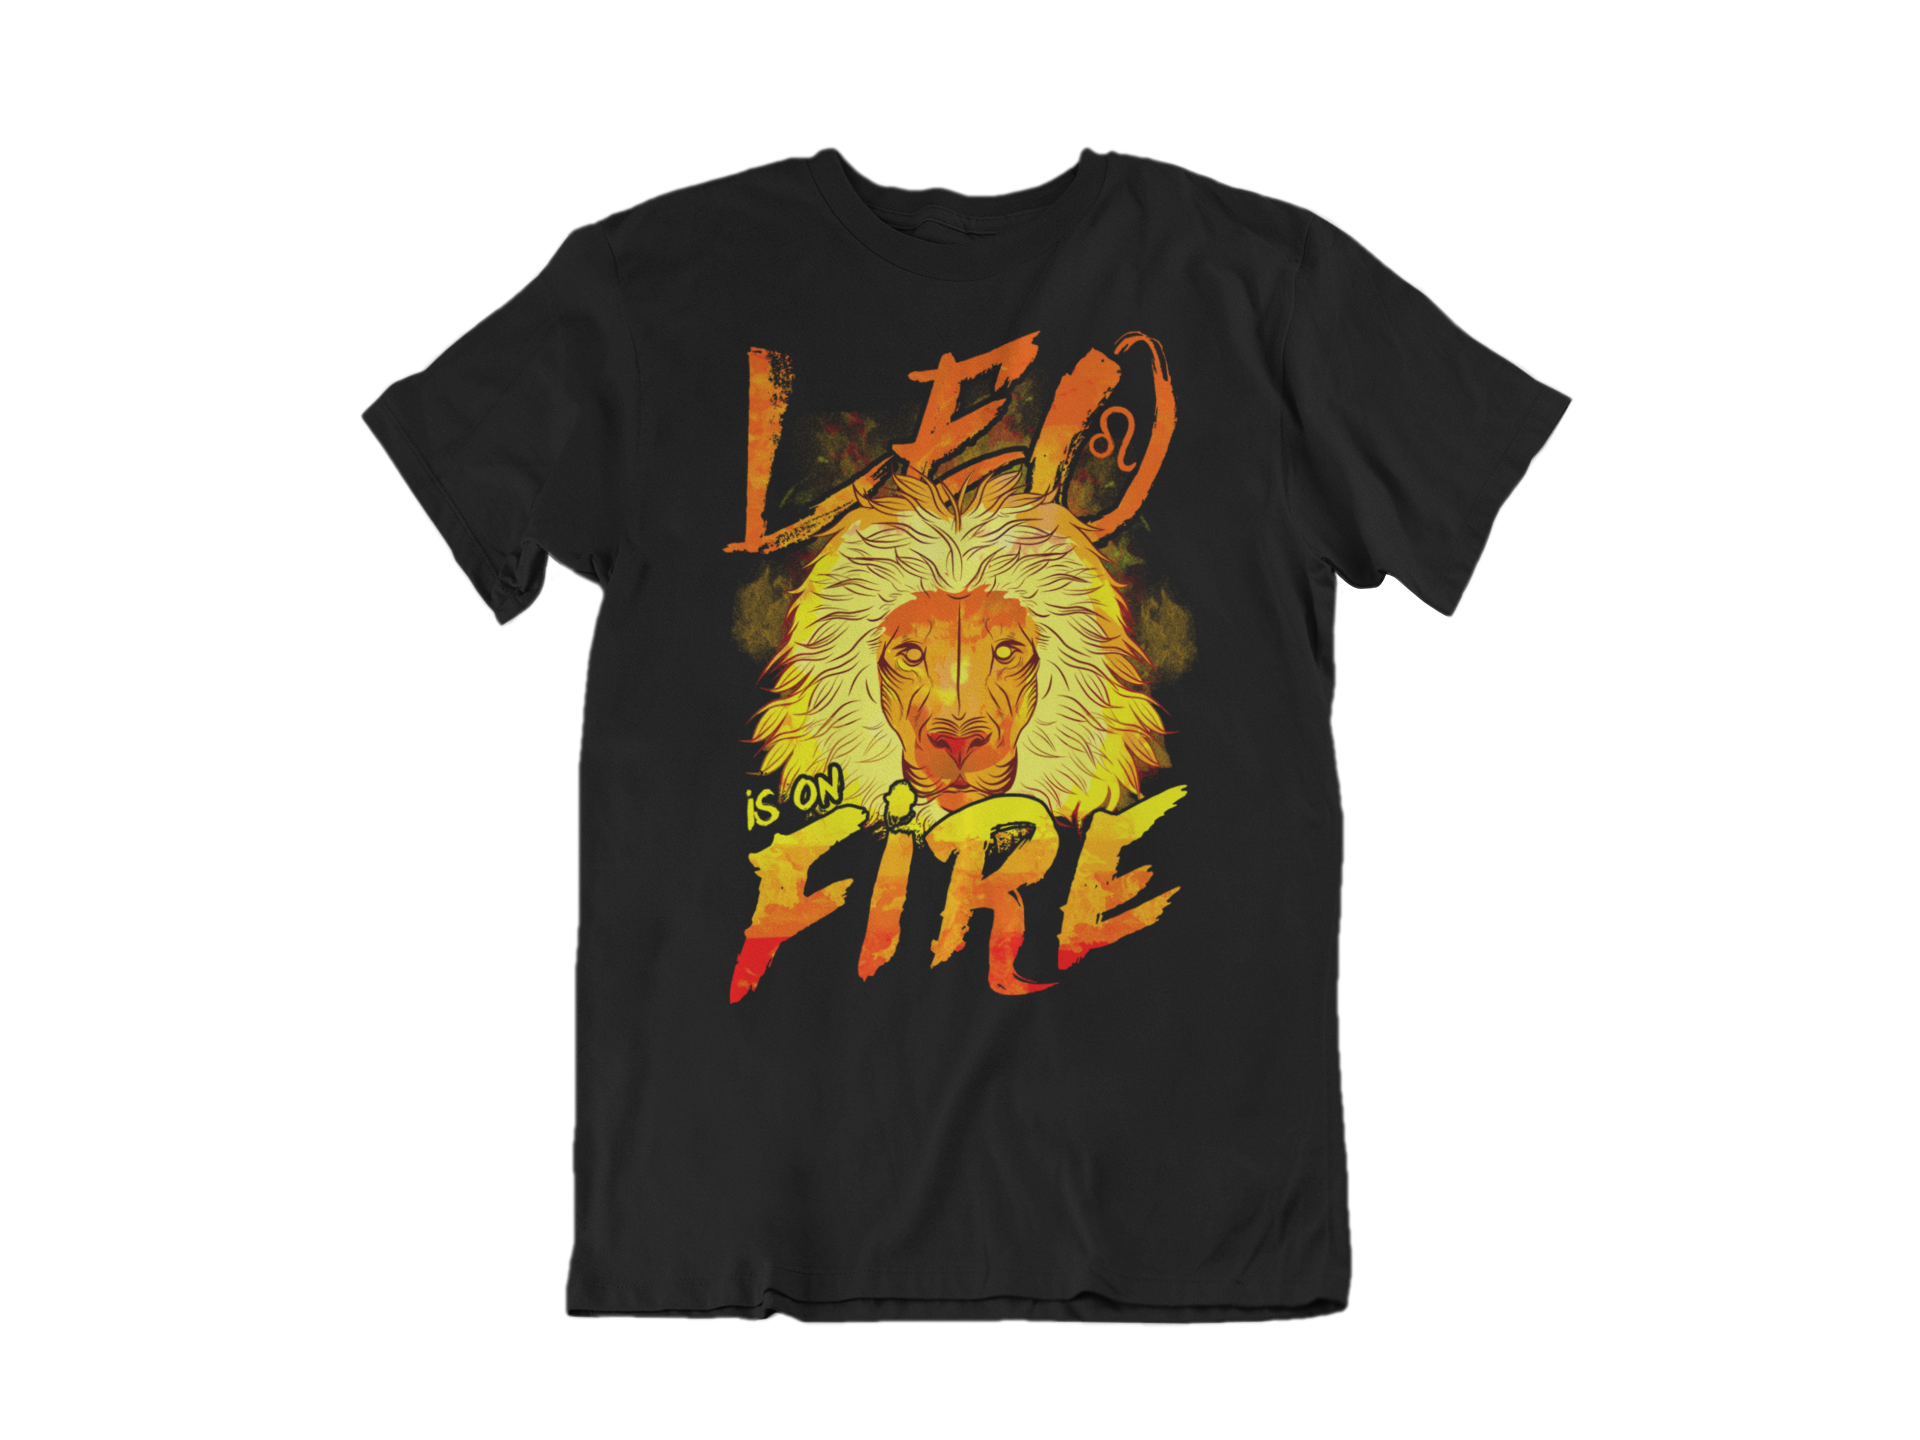 Leo is on Fire